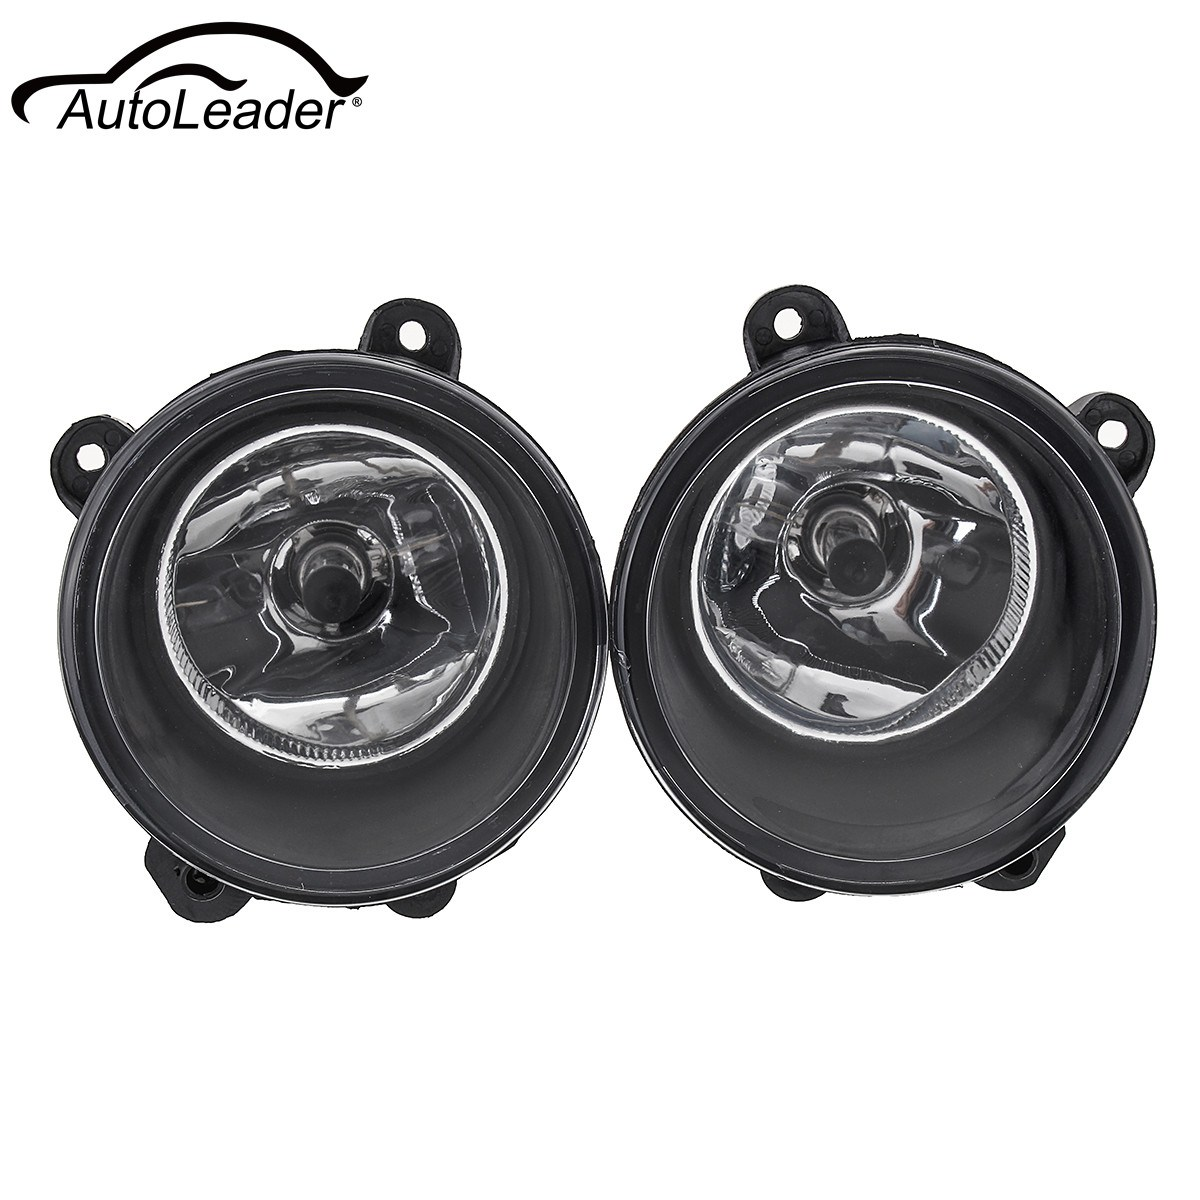 1Pair Car Fog Lights Clear Lamp H11 Bulbs Front Right+Left Fog Lamp For Land Rover Discovery 3 X2 2003-2009 new 1pair car left